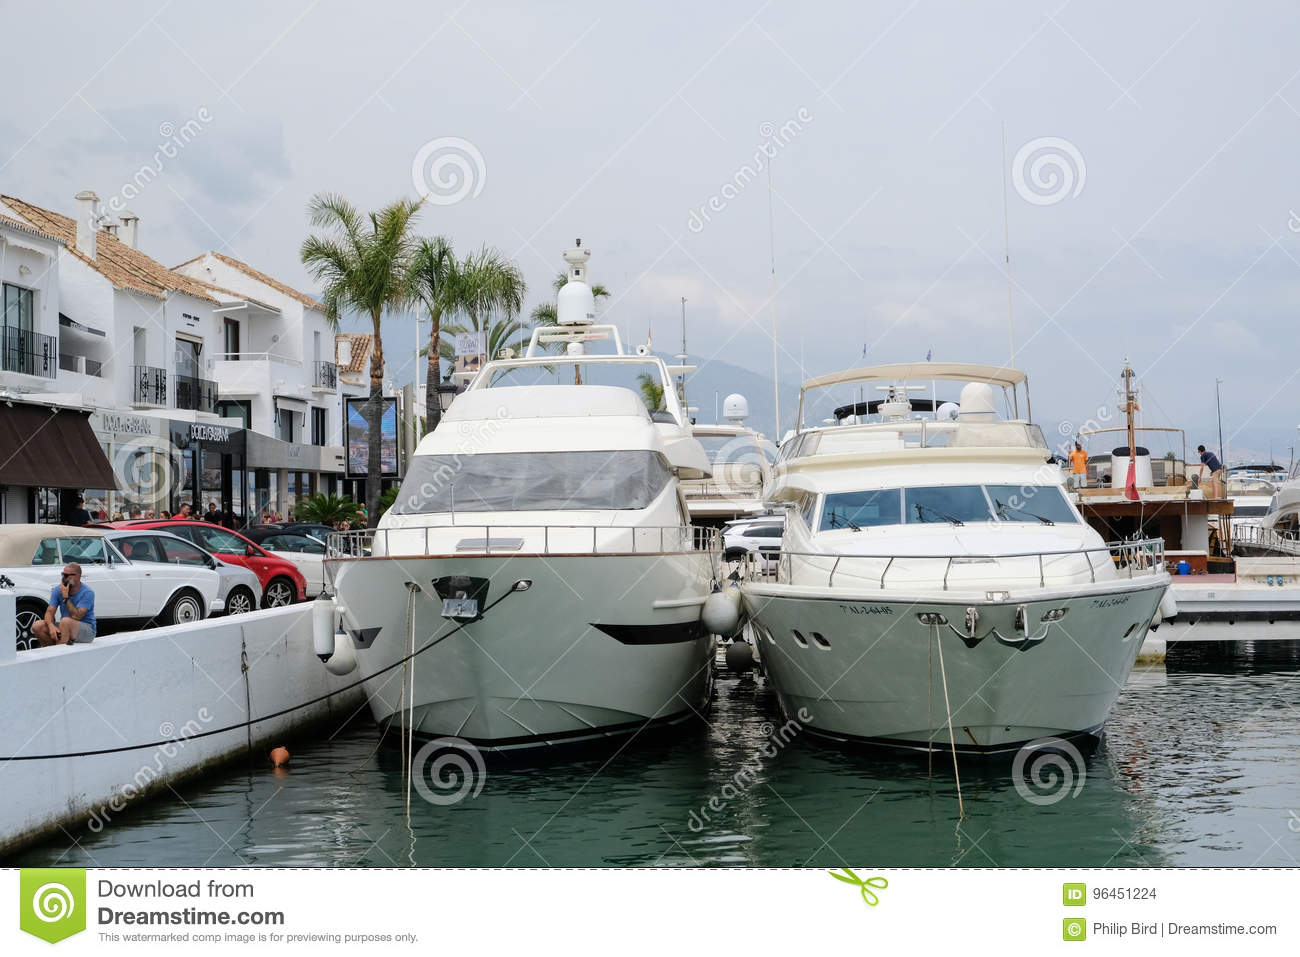 PUERTO BANUS, ANDALUCIA/SPAIN - JULY 6 : View of the Harbour in